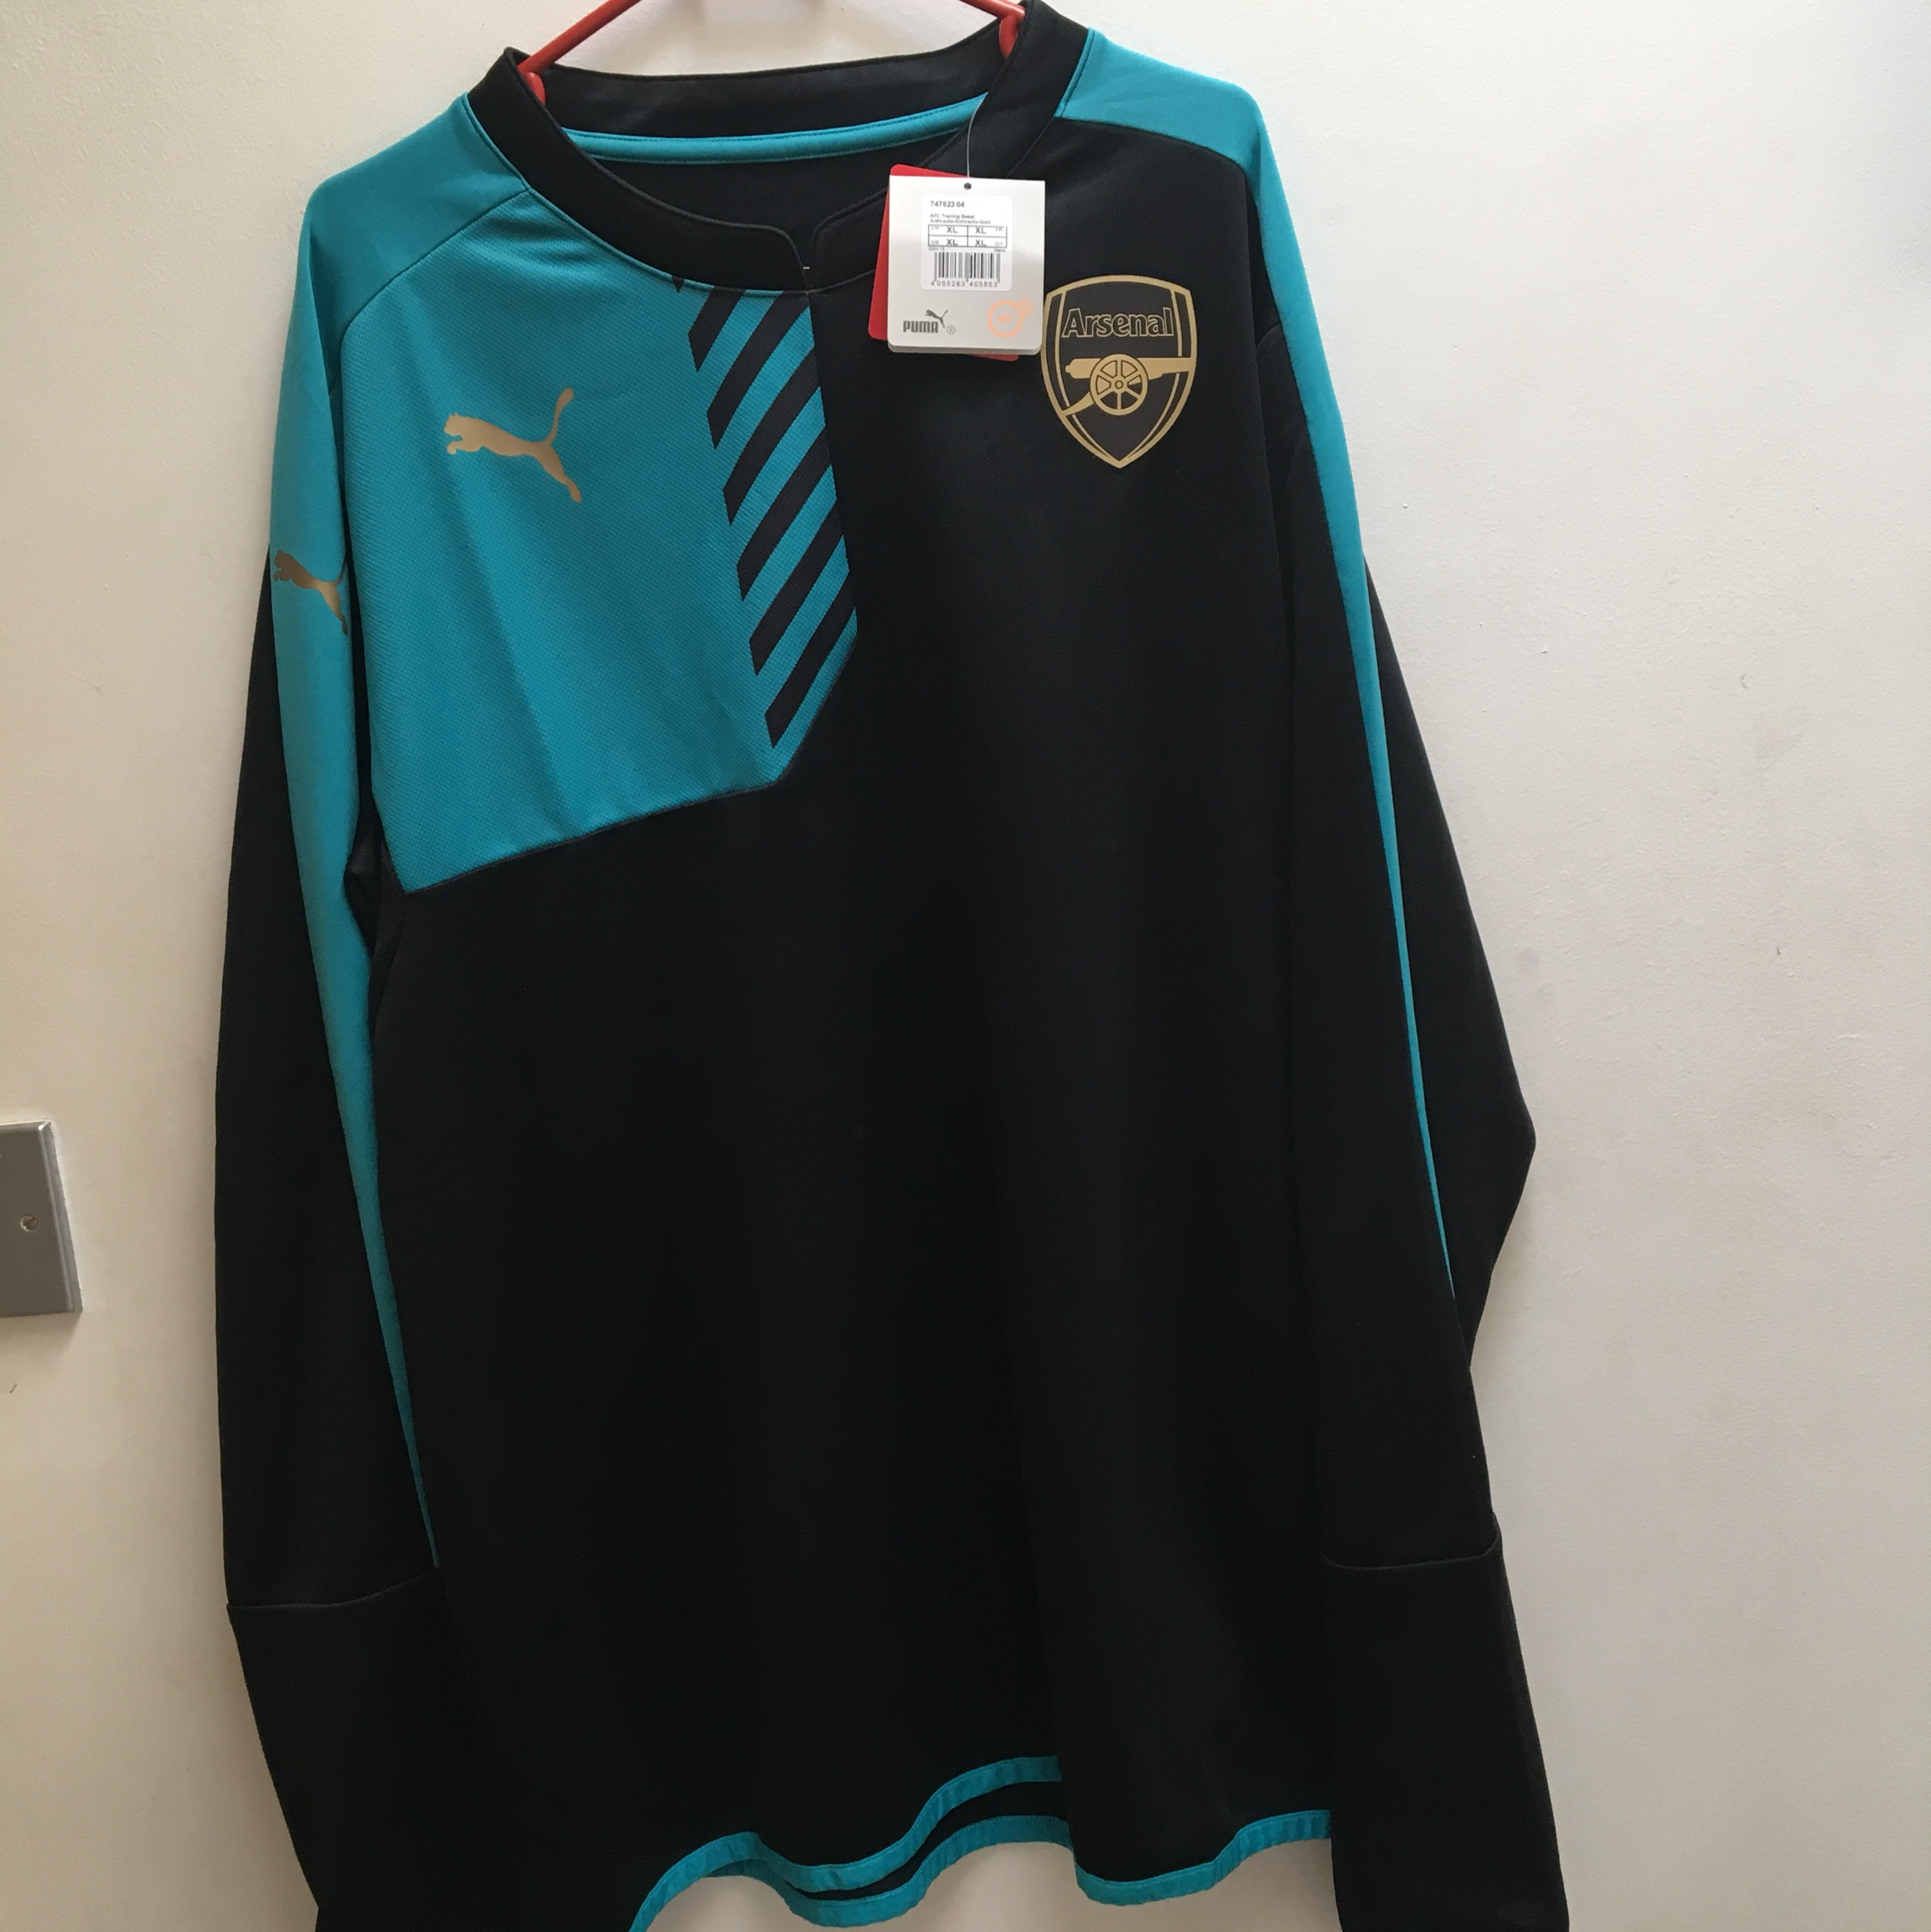 sports shoes c9722 a0931 Official Arsenal training jersey. Brand new with... - Depop